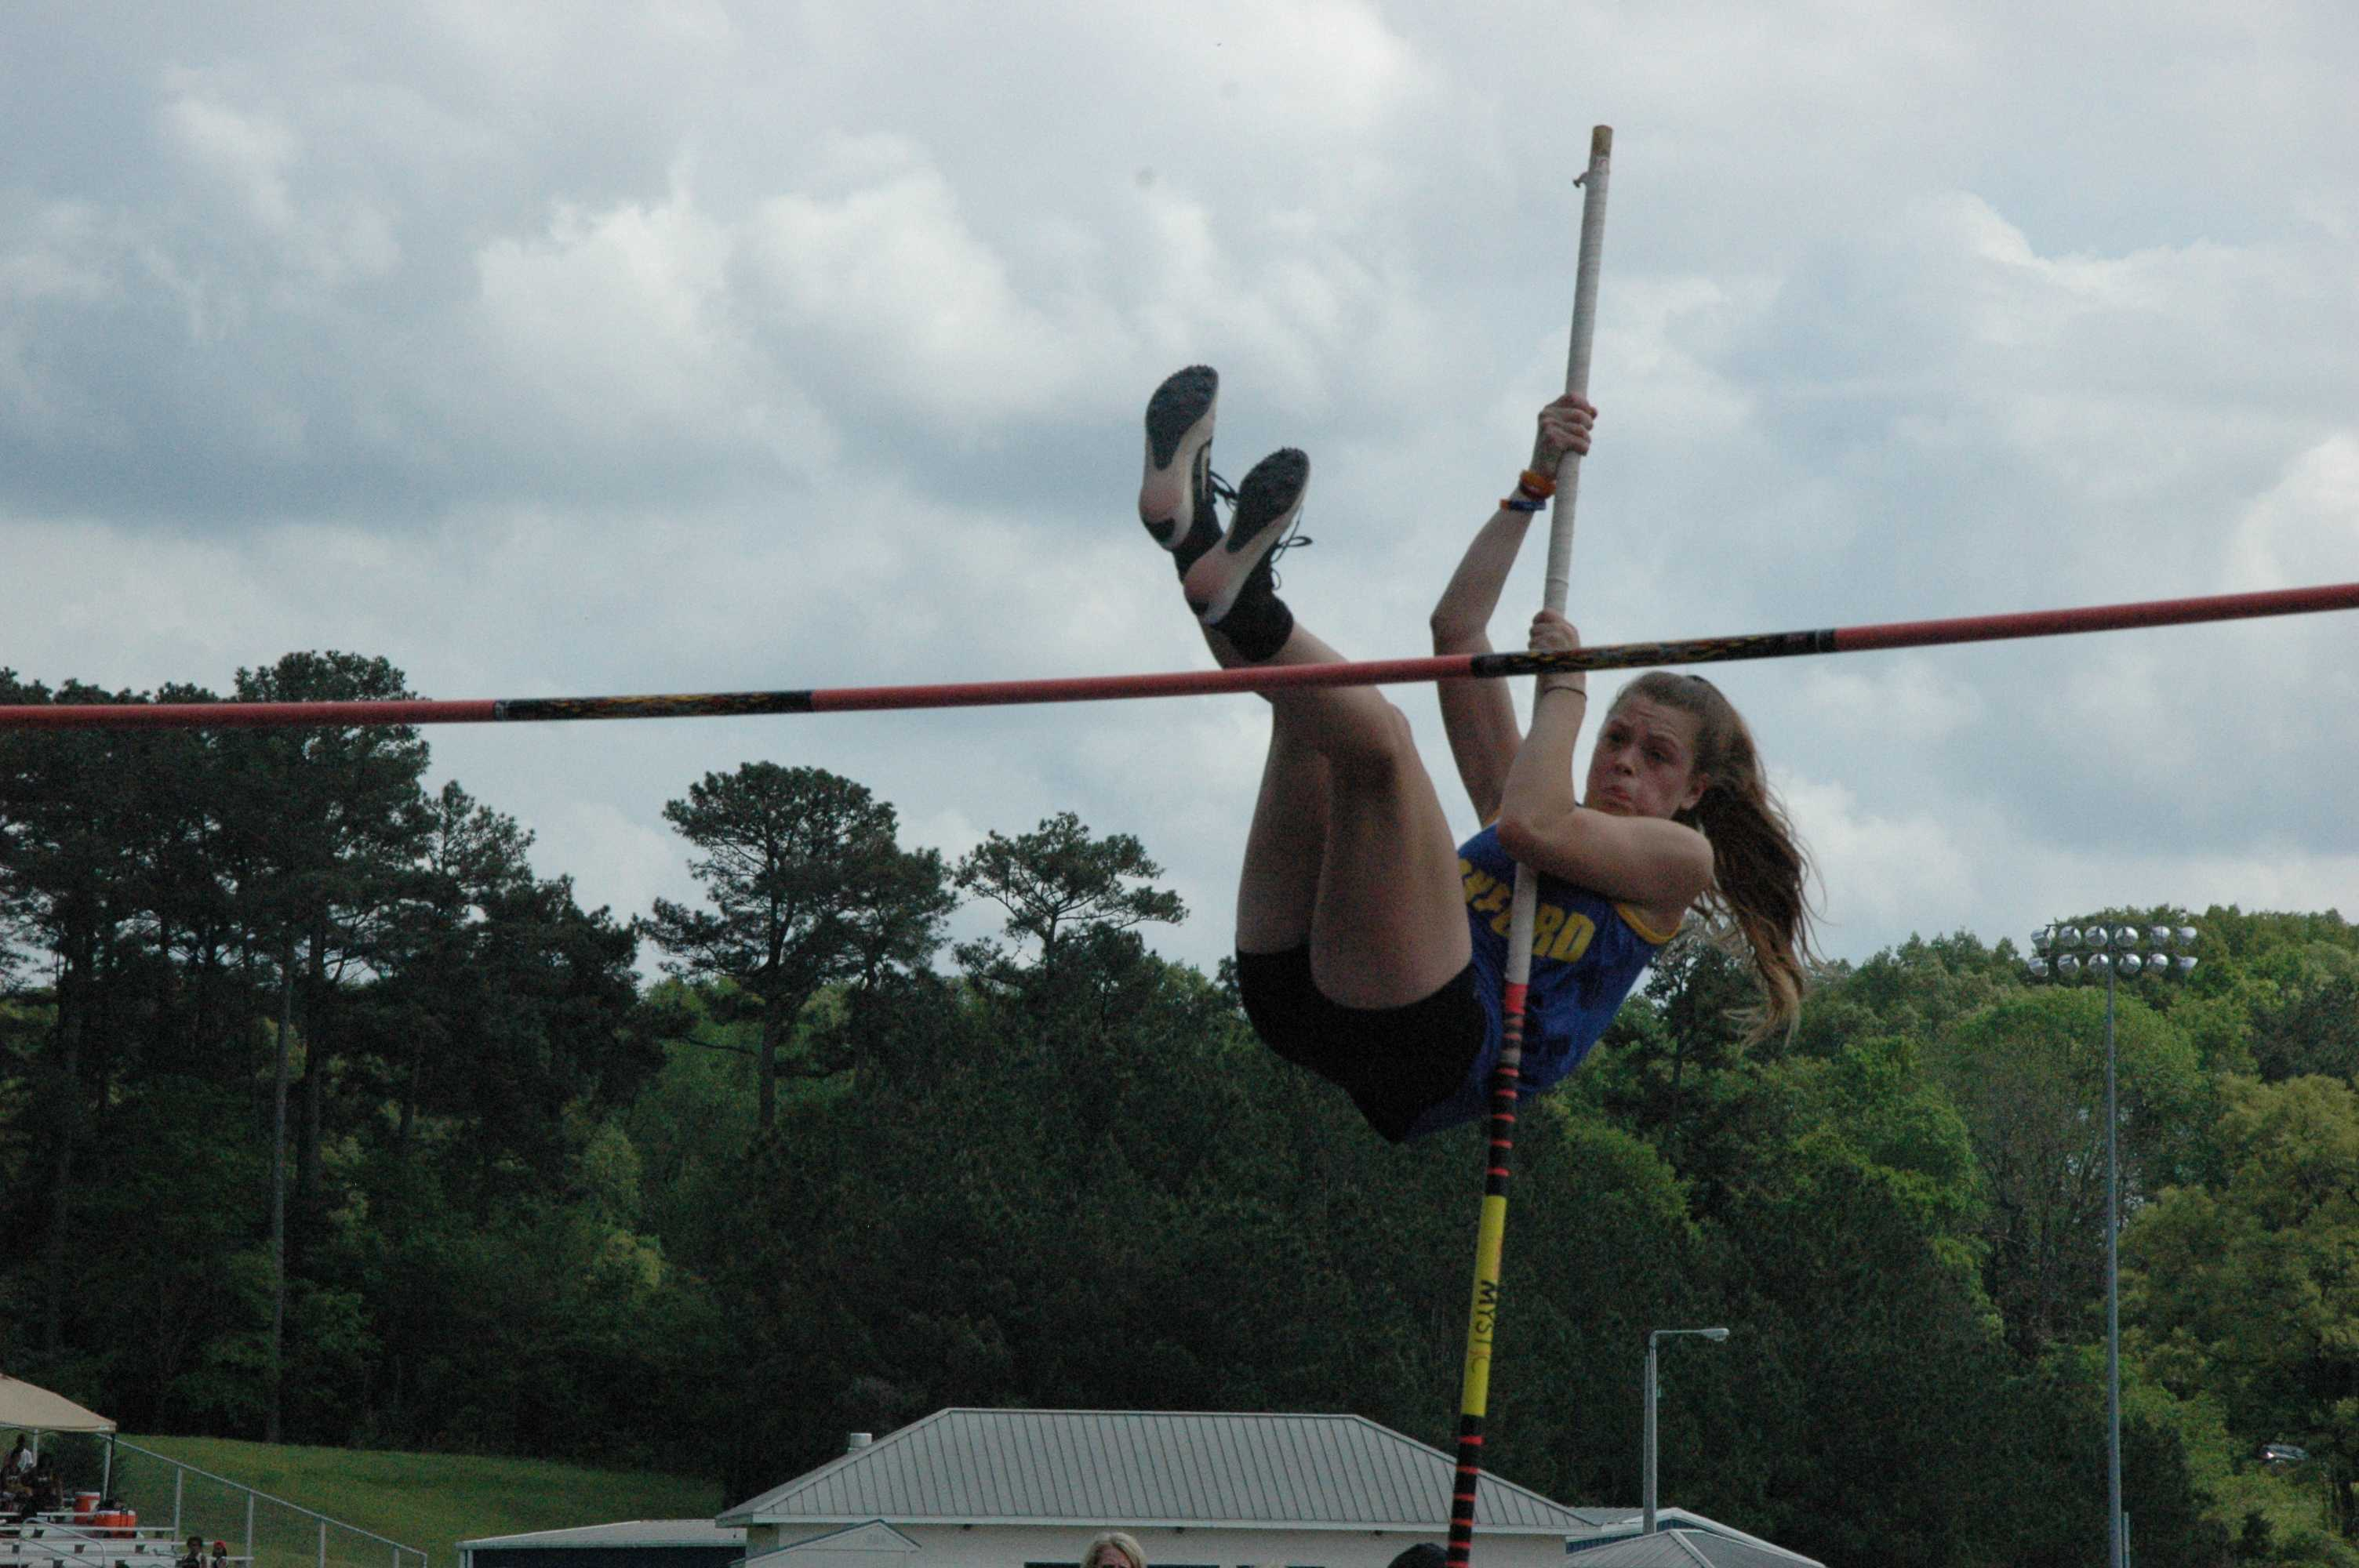 Arden+David+pole+vaults.+Davis+came+in+2nd+for+girls%27+pole+vaulting.